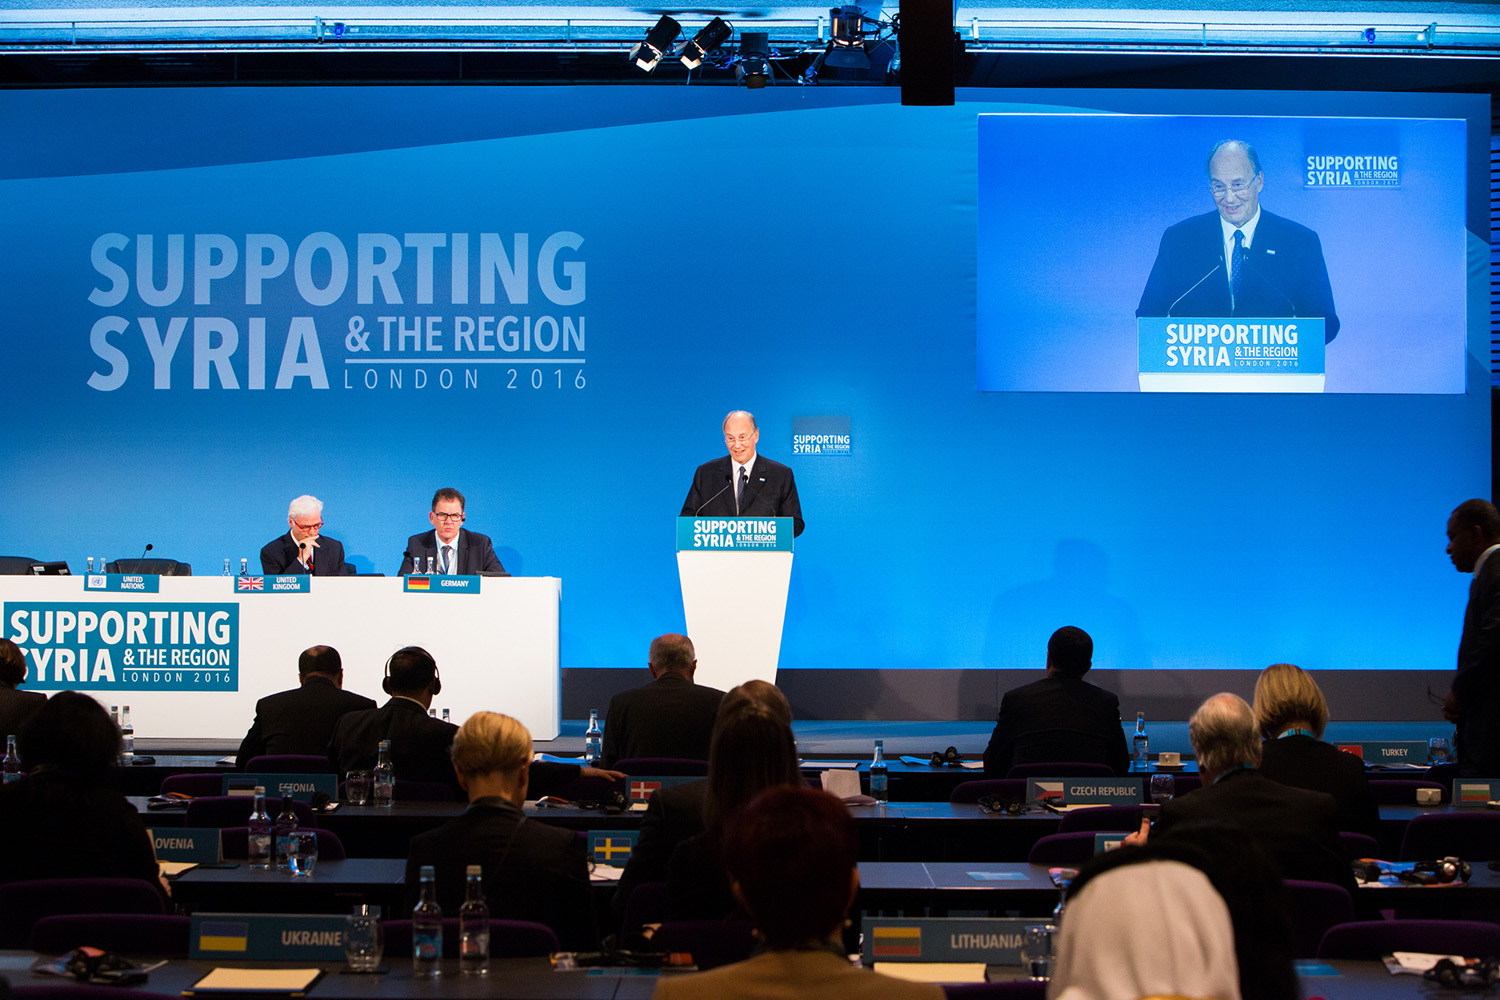 Mawlana Hazar Imam addressing the Supporting Syria and the Region conference in London on 4 February 2016.